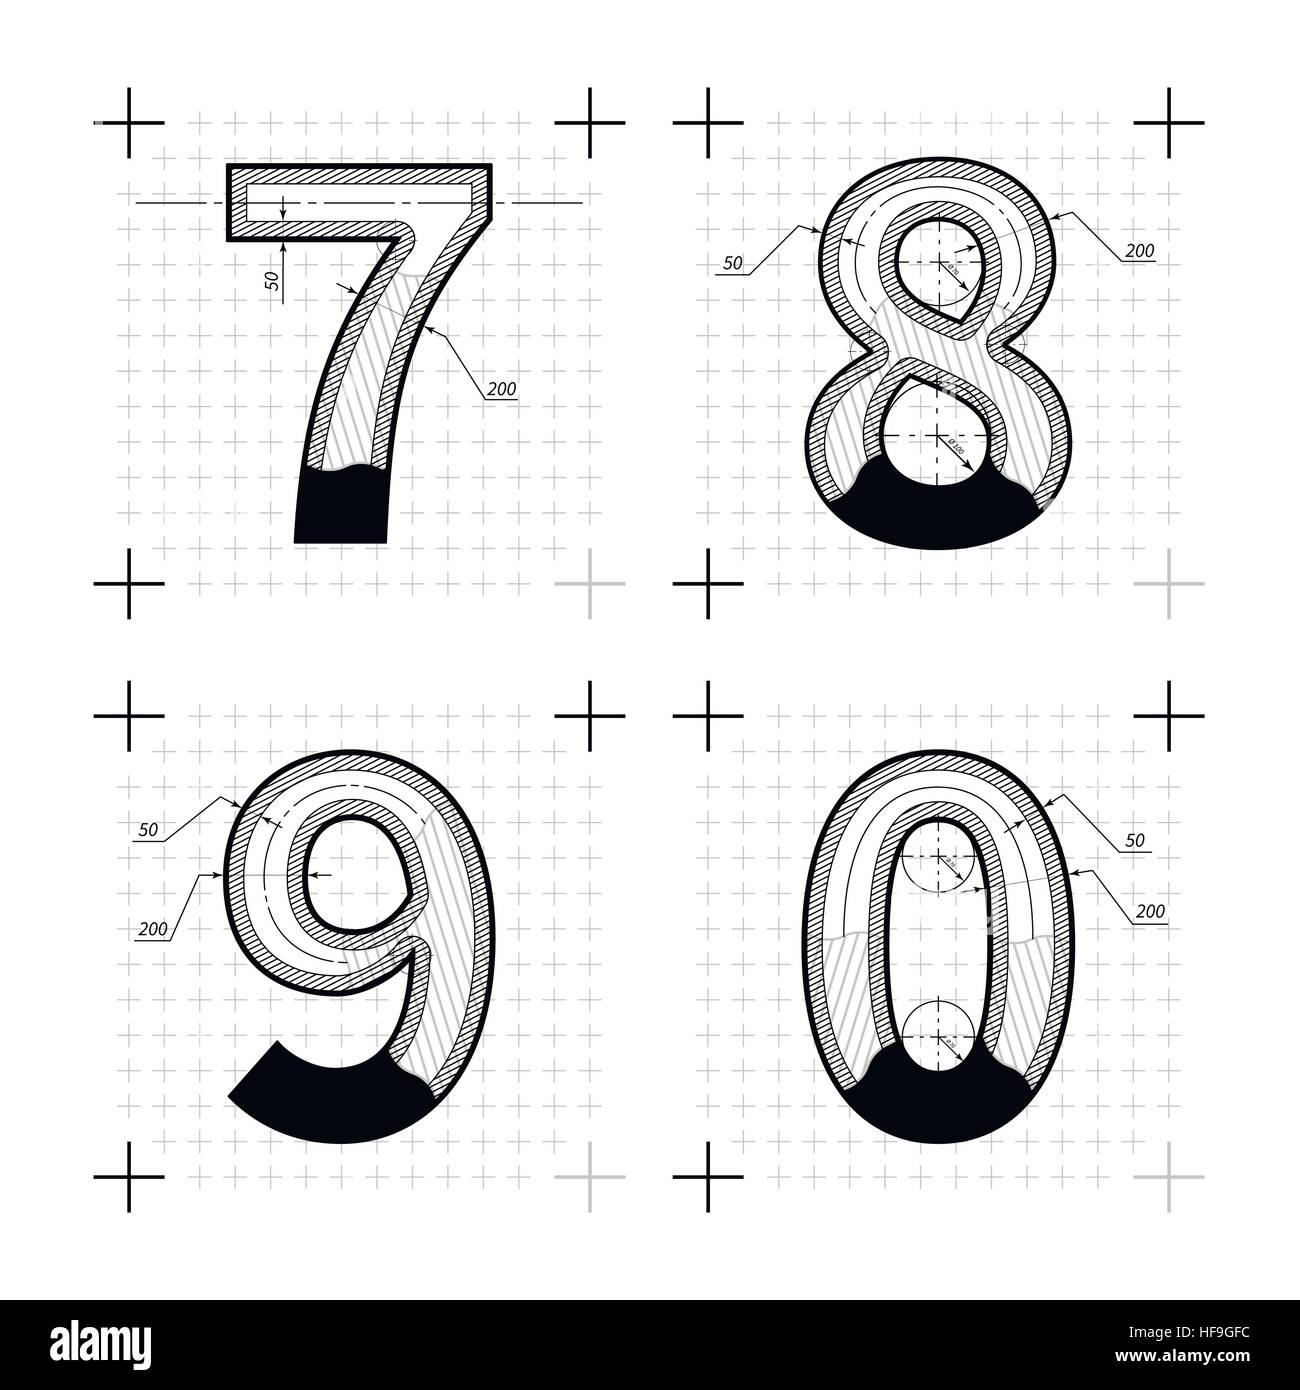 Architectural sketches of 7 8 9 0 letters blueprint style font on architectural sketches of 7 8 9 0 letters blueprint style font on stock vector art illustration vector image 129902960 alamy malvernweather Gallery